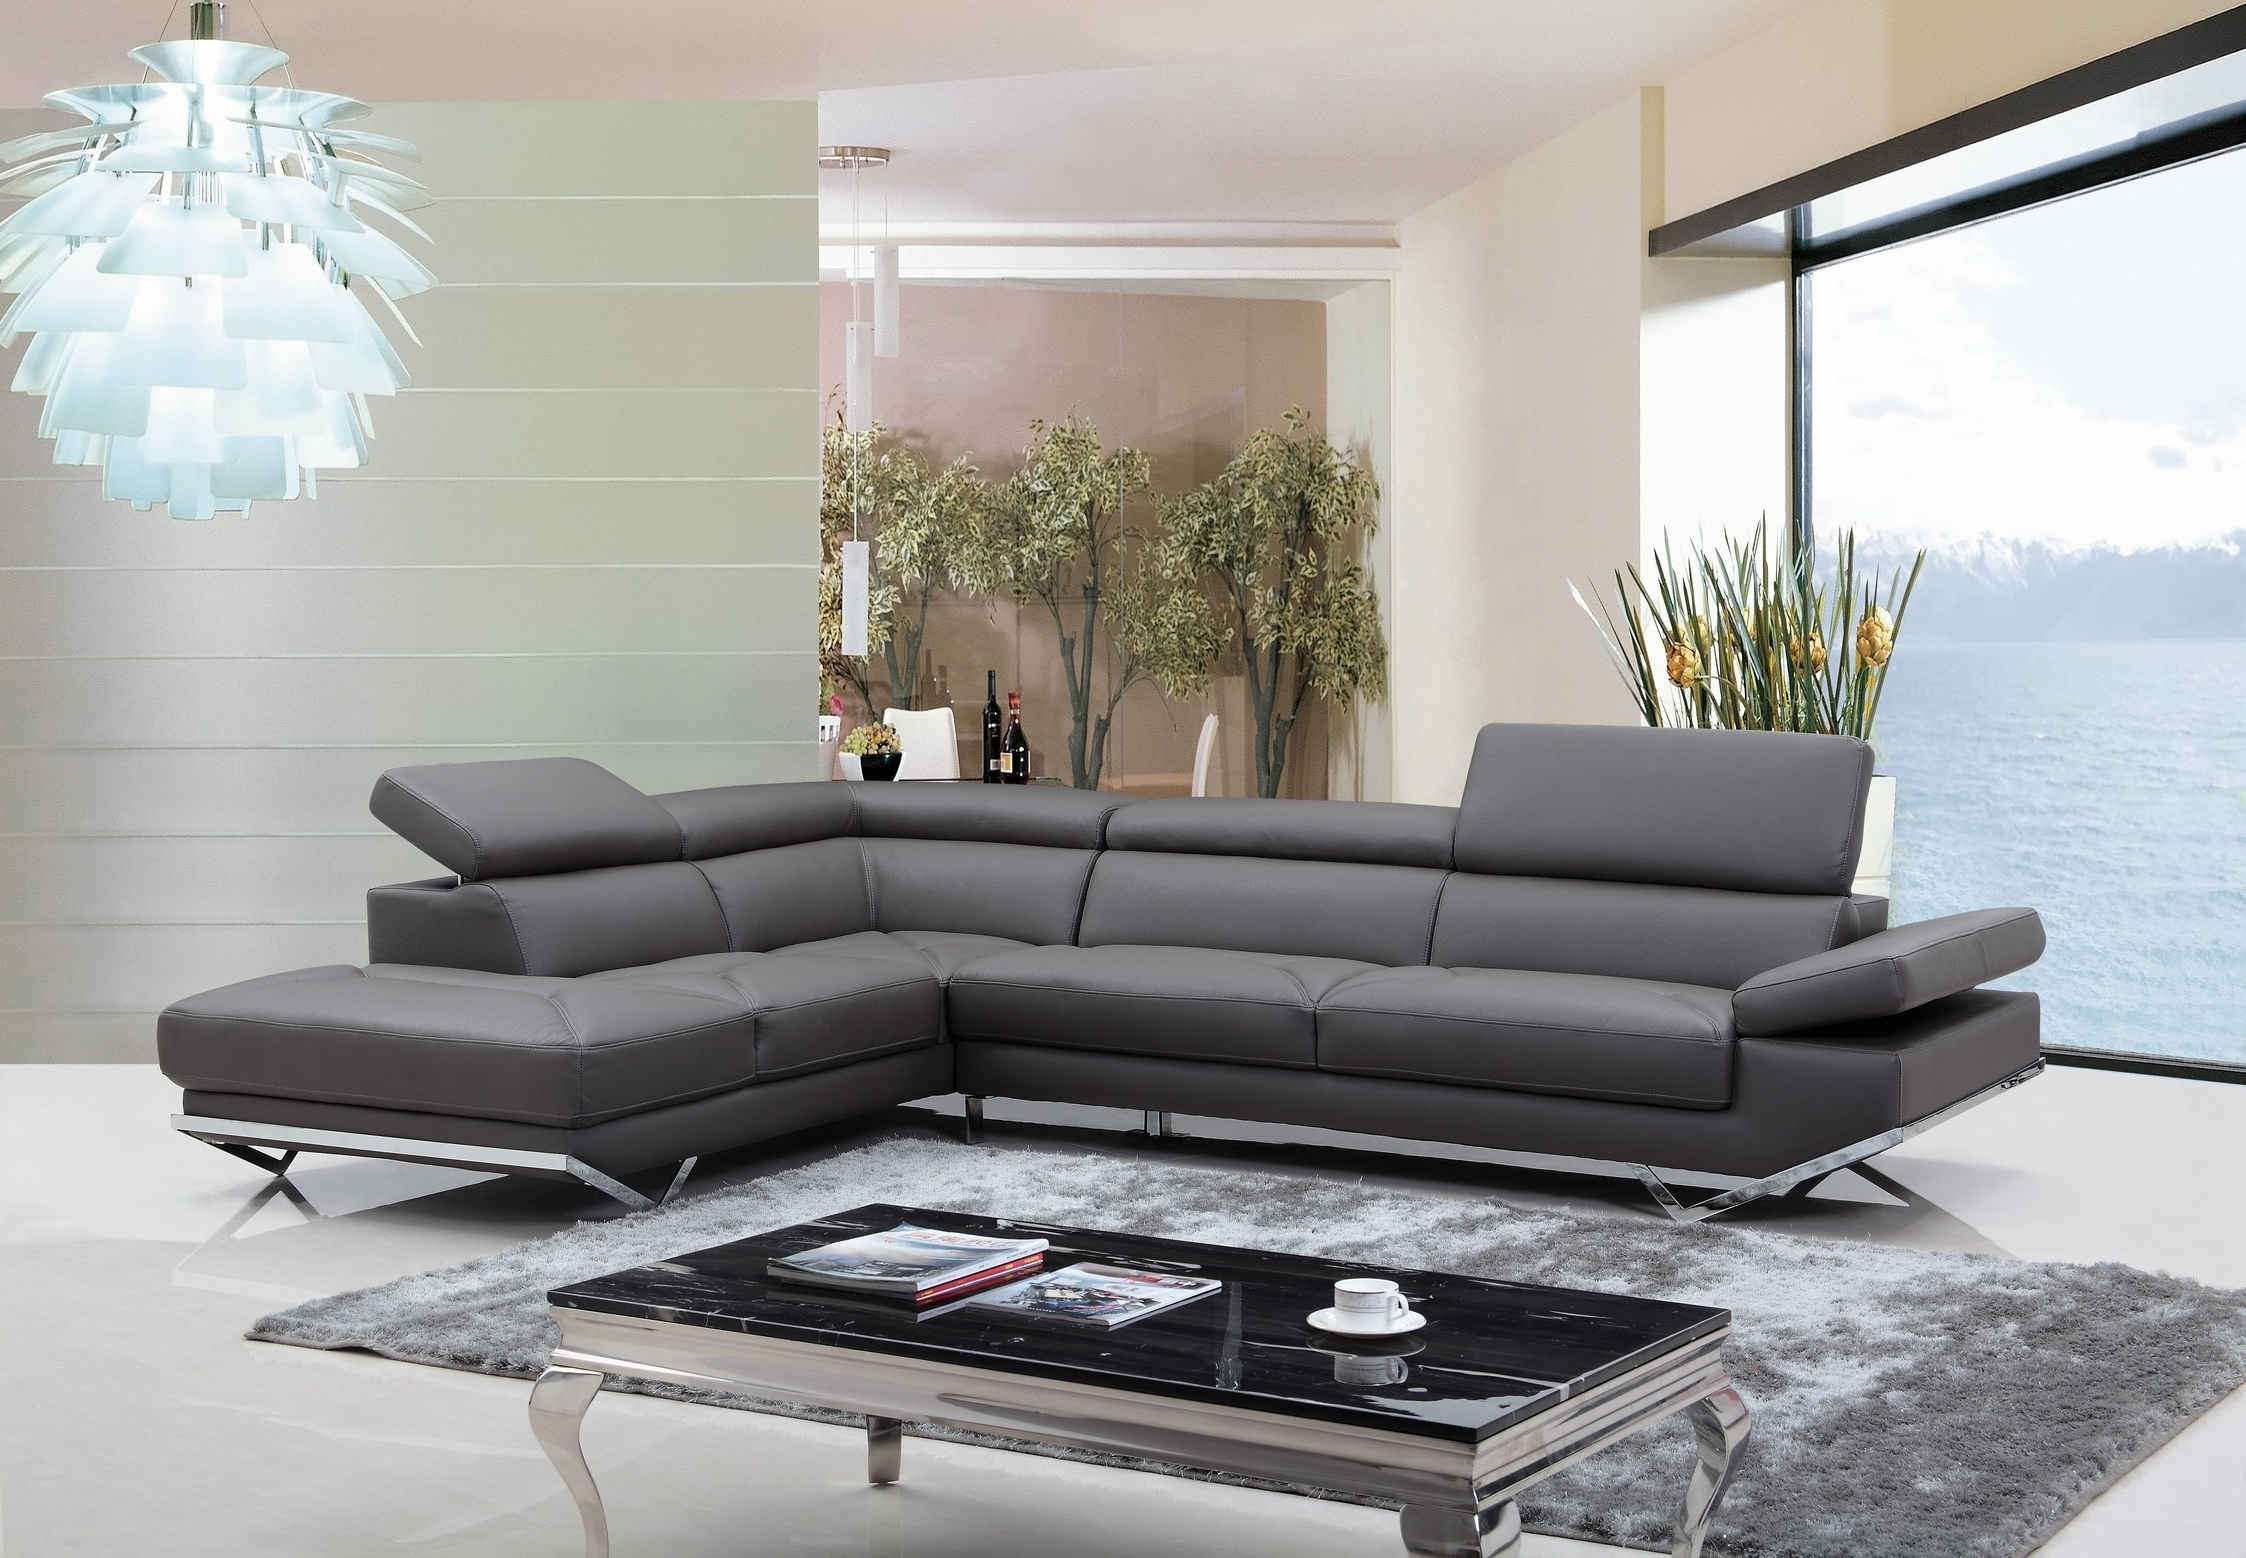 Sofa Modernr Ideas For Living Room Hupehome Contemporary Furniture Regarding Most Current High Point Nc Sectional Sofas (View 14 of 20)